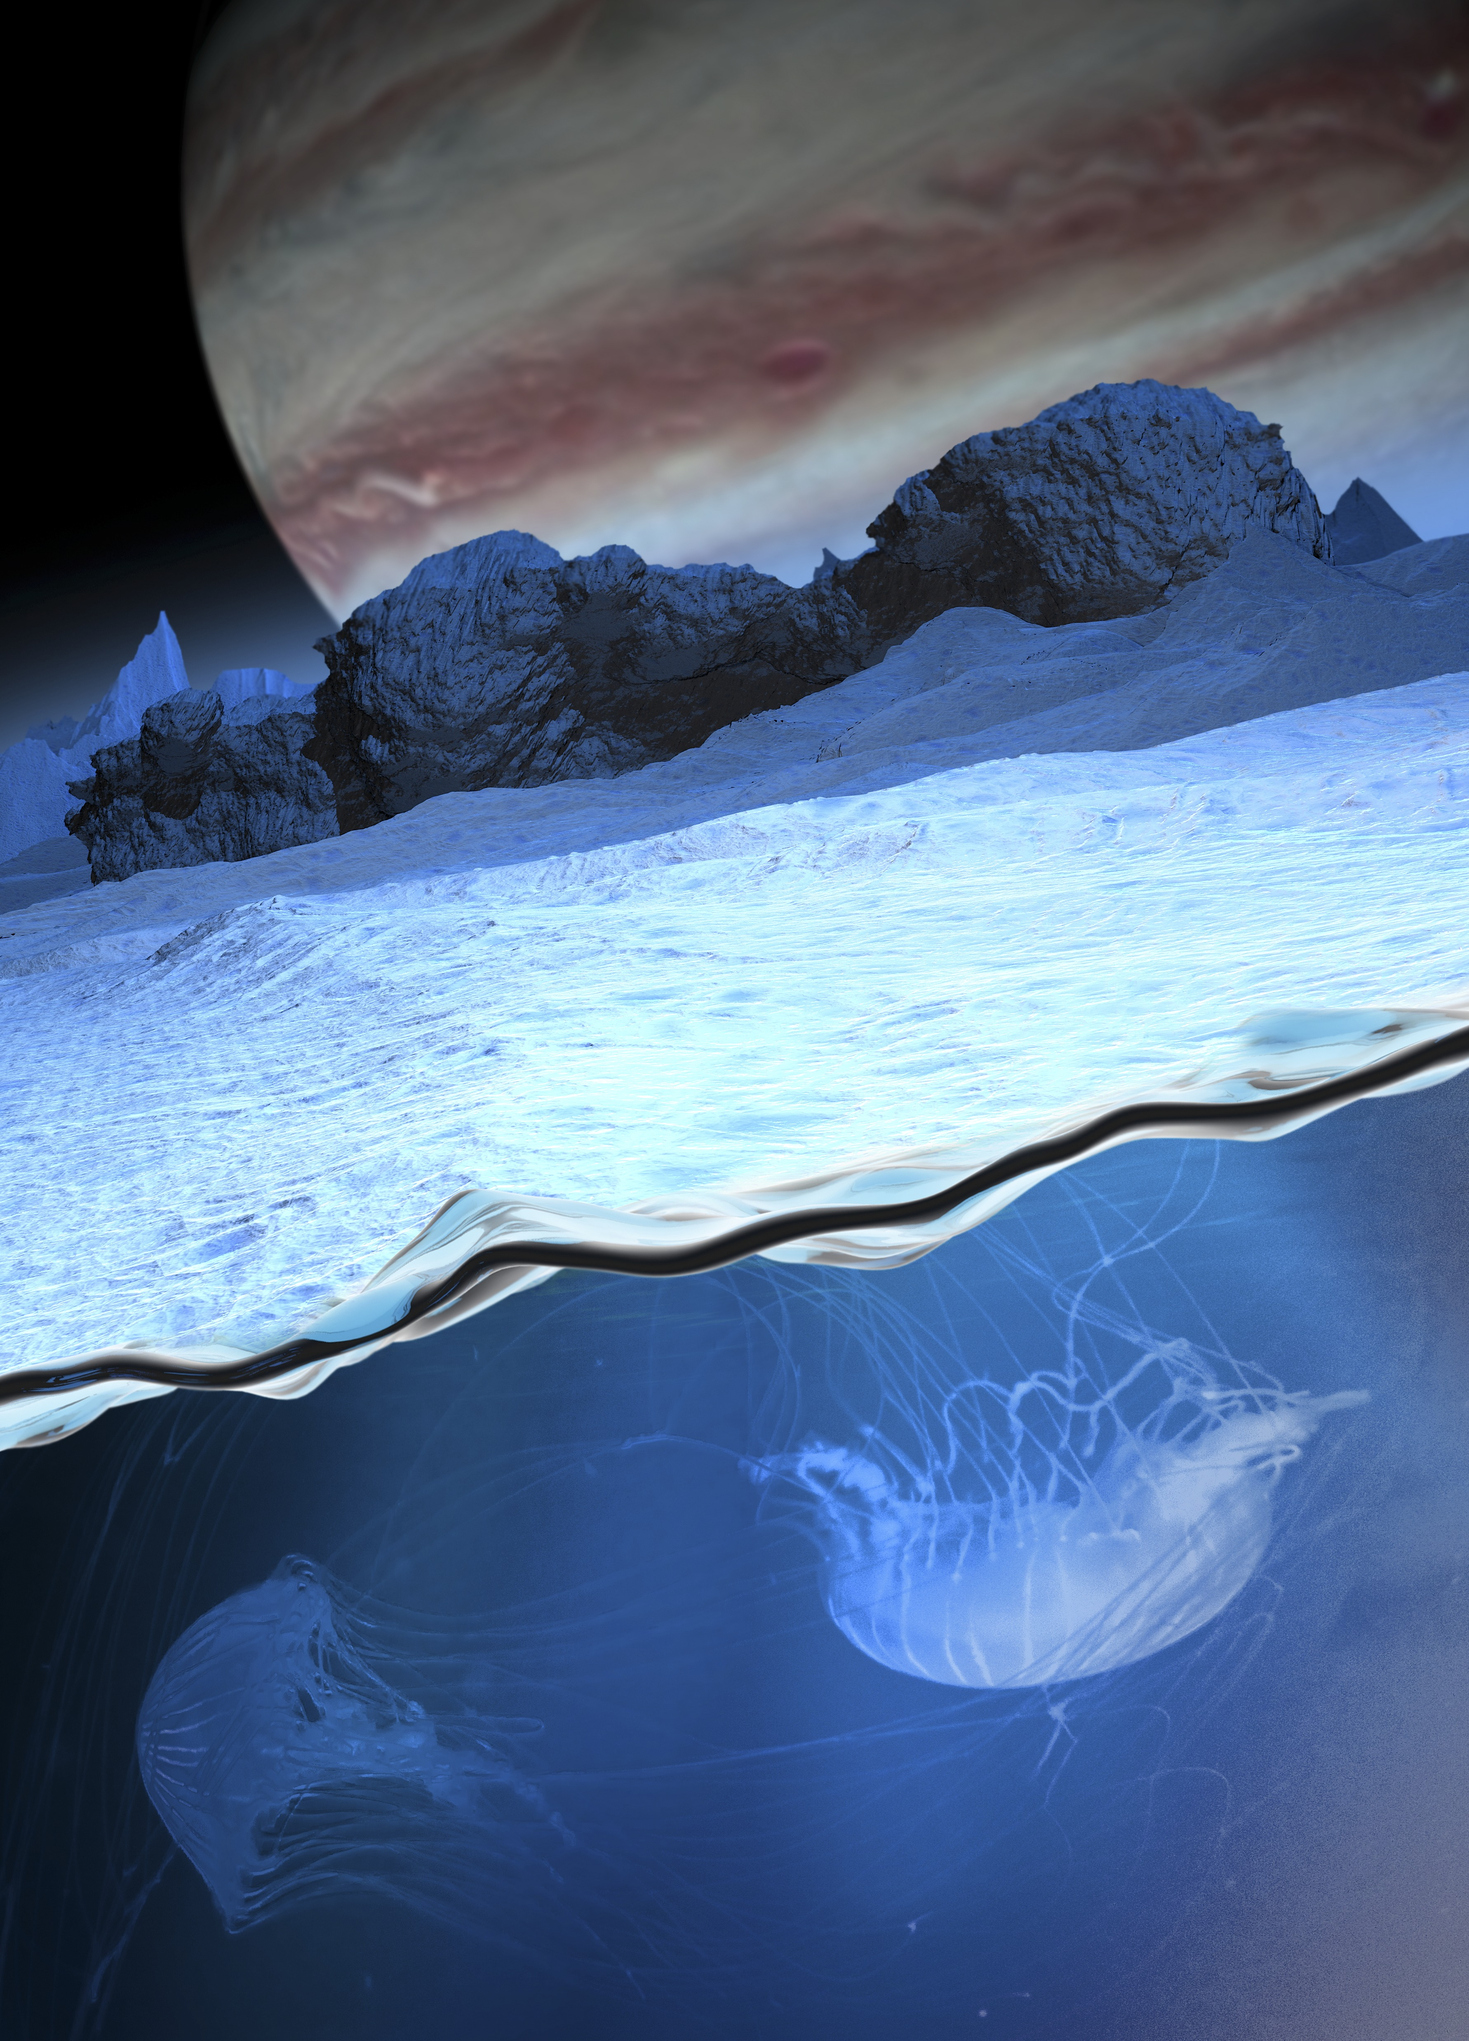 Life may be abundant and unseen on planets with subsurface oceans, according to NASA's Pluto chief.